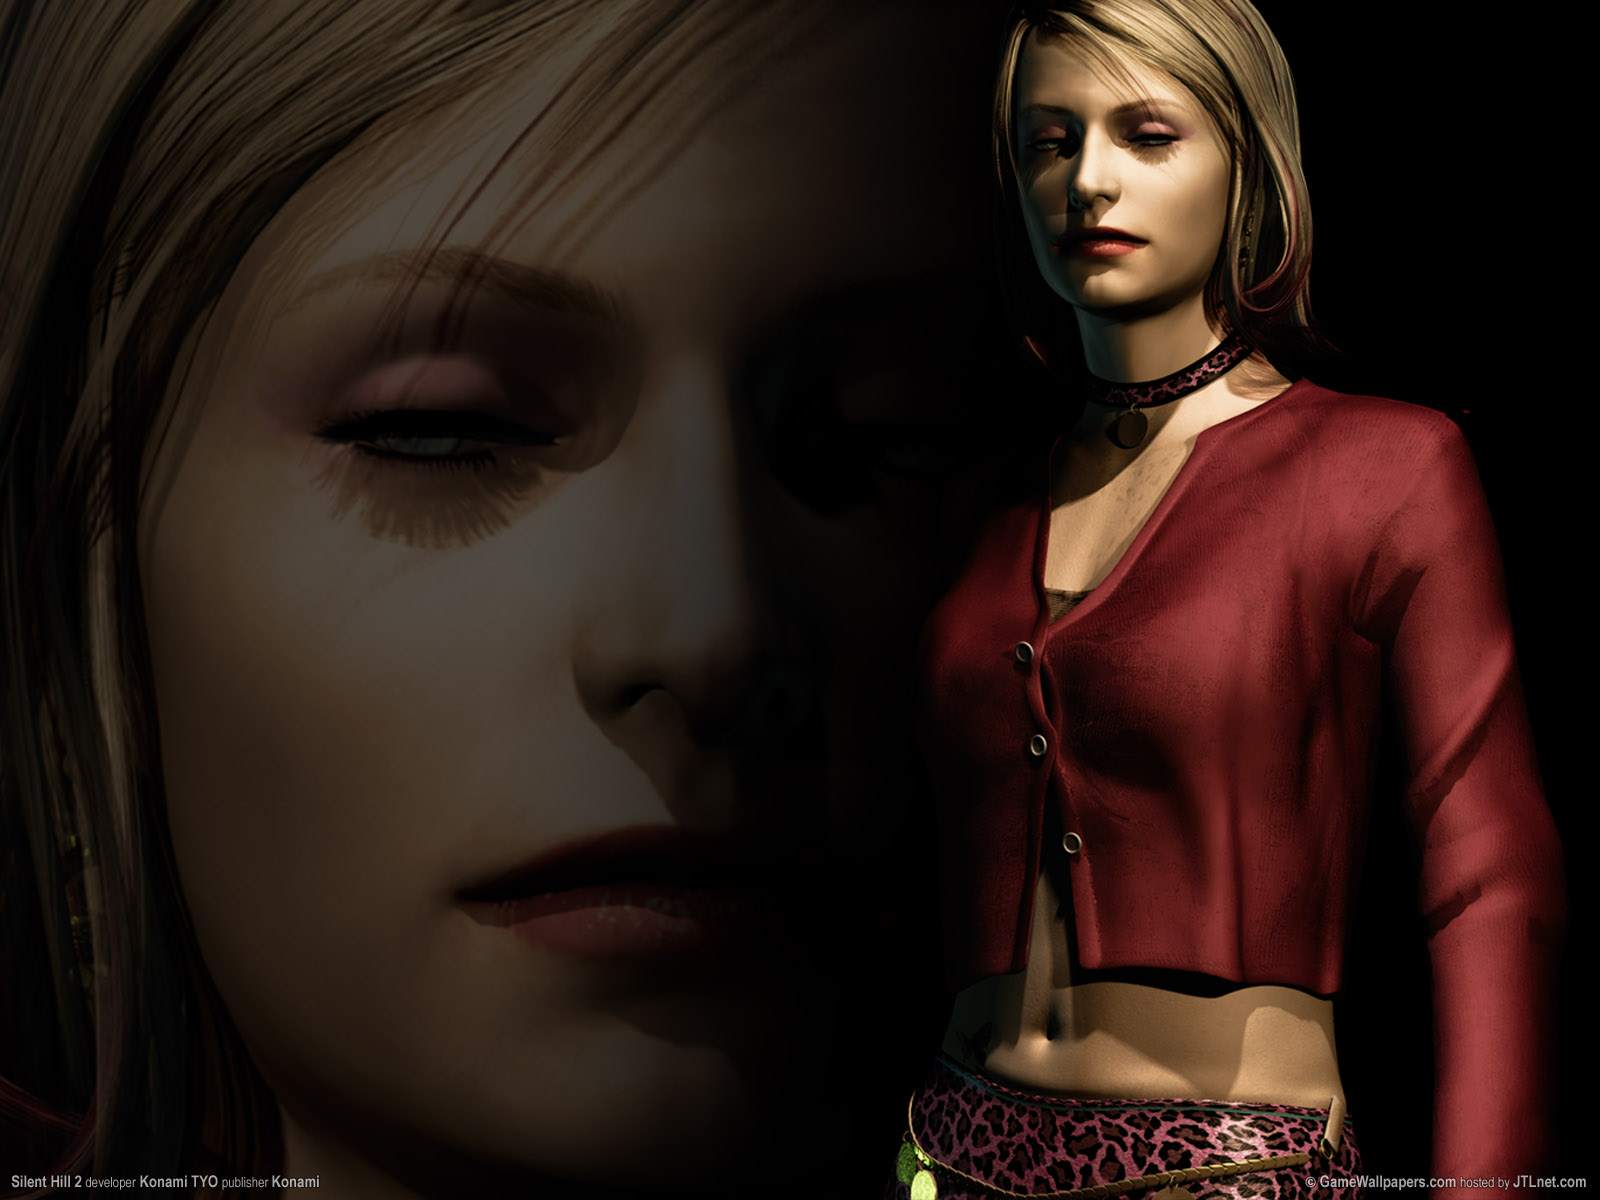 Silent Hill Wallpapers My Silent Hill